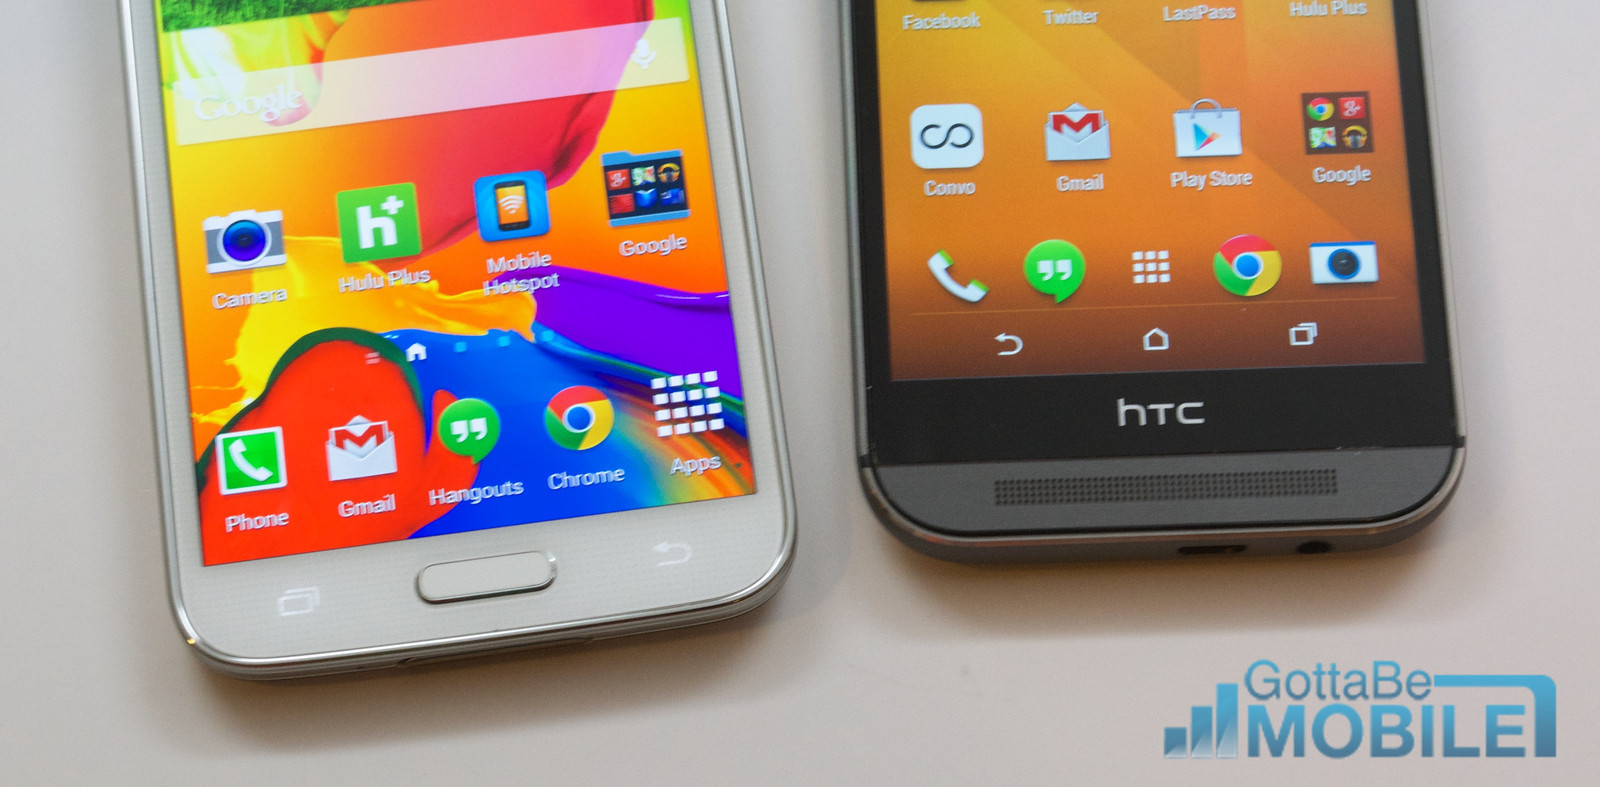 The Galaxy S5 features a fingerprint reader and capacitive buttons while the HTC One M8 features on screen buttons.